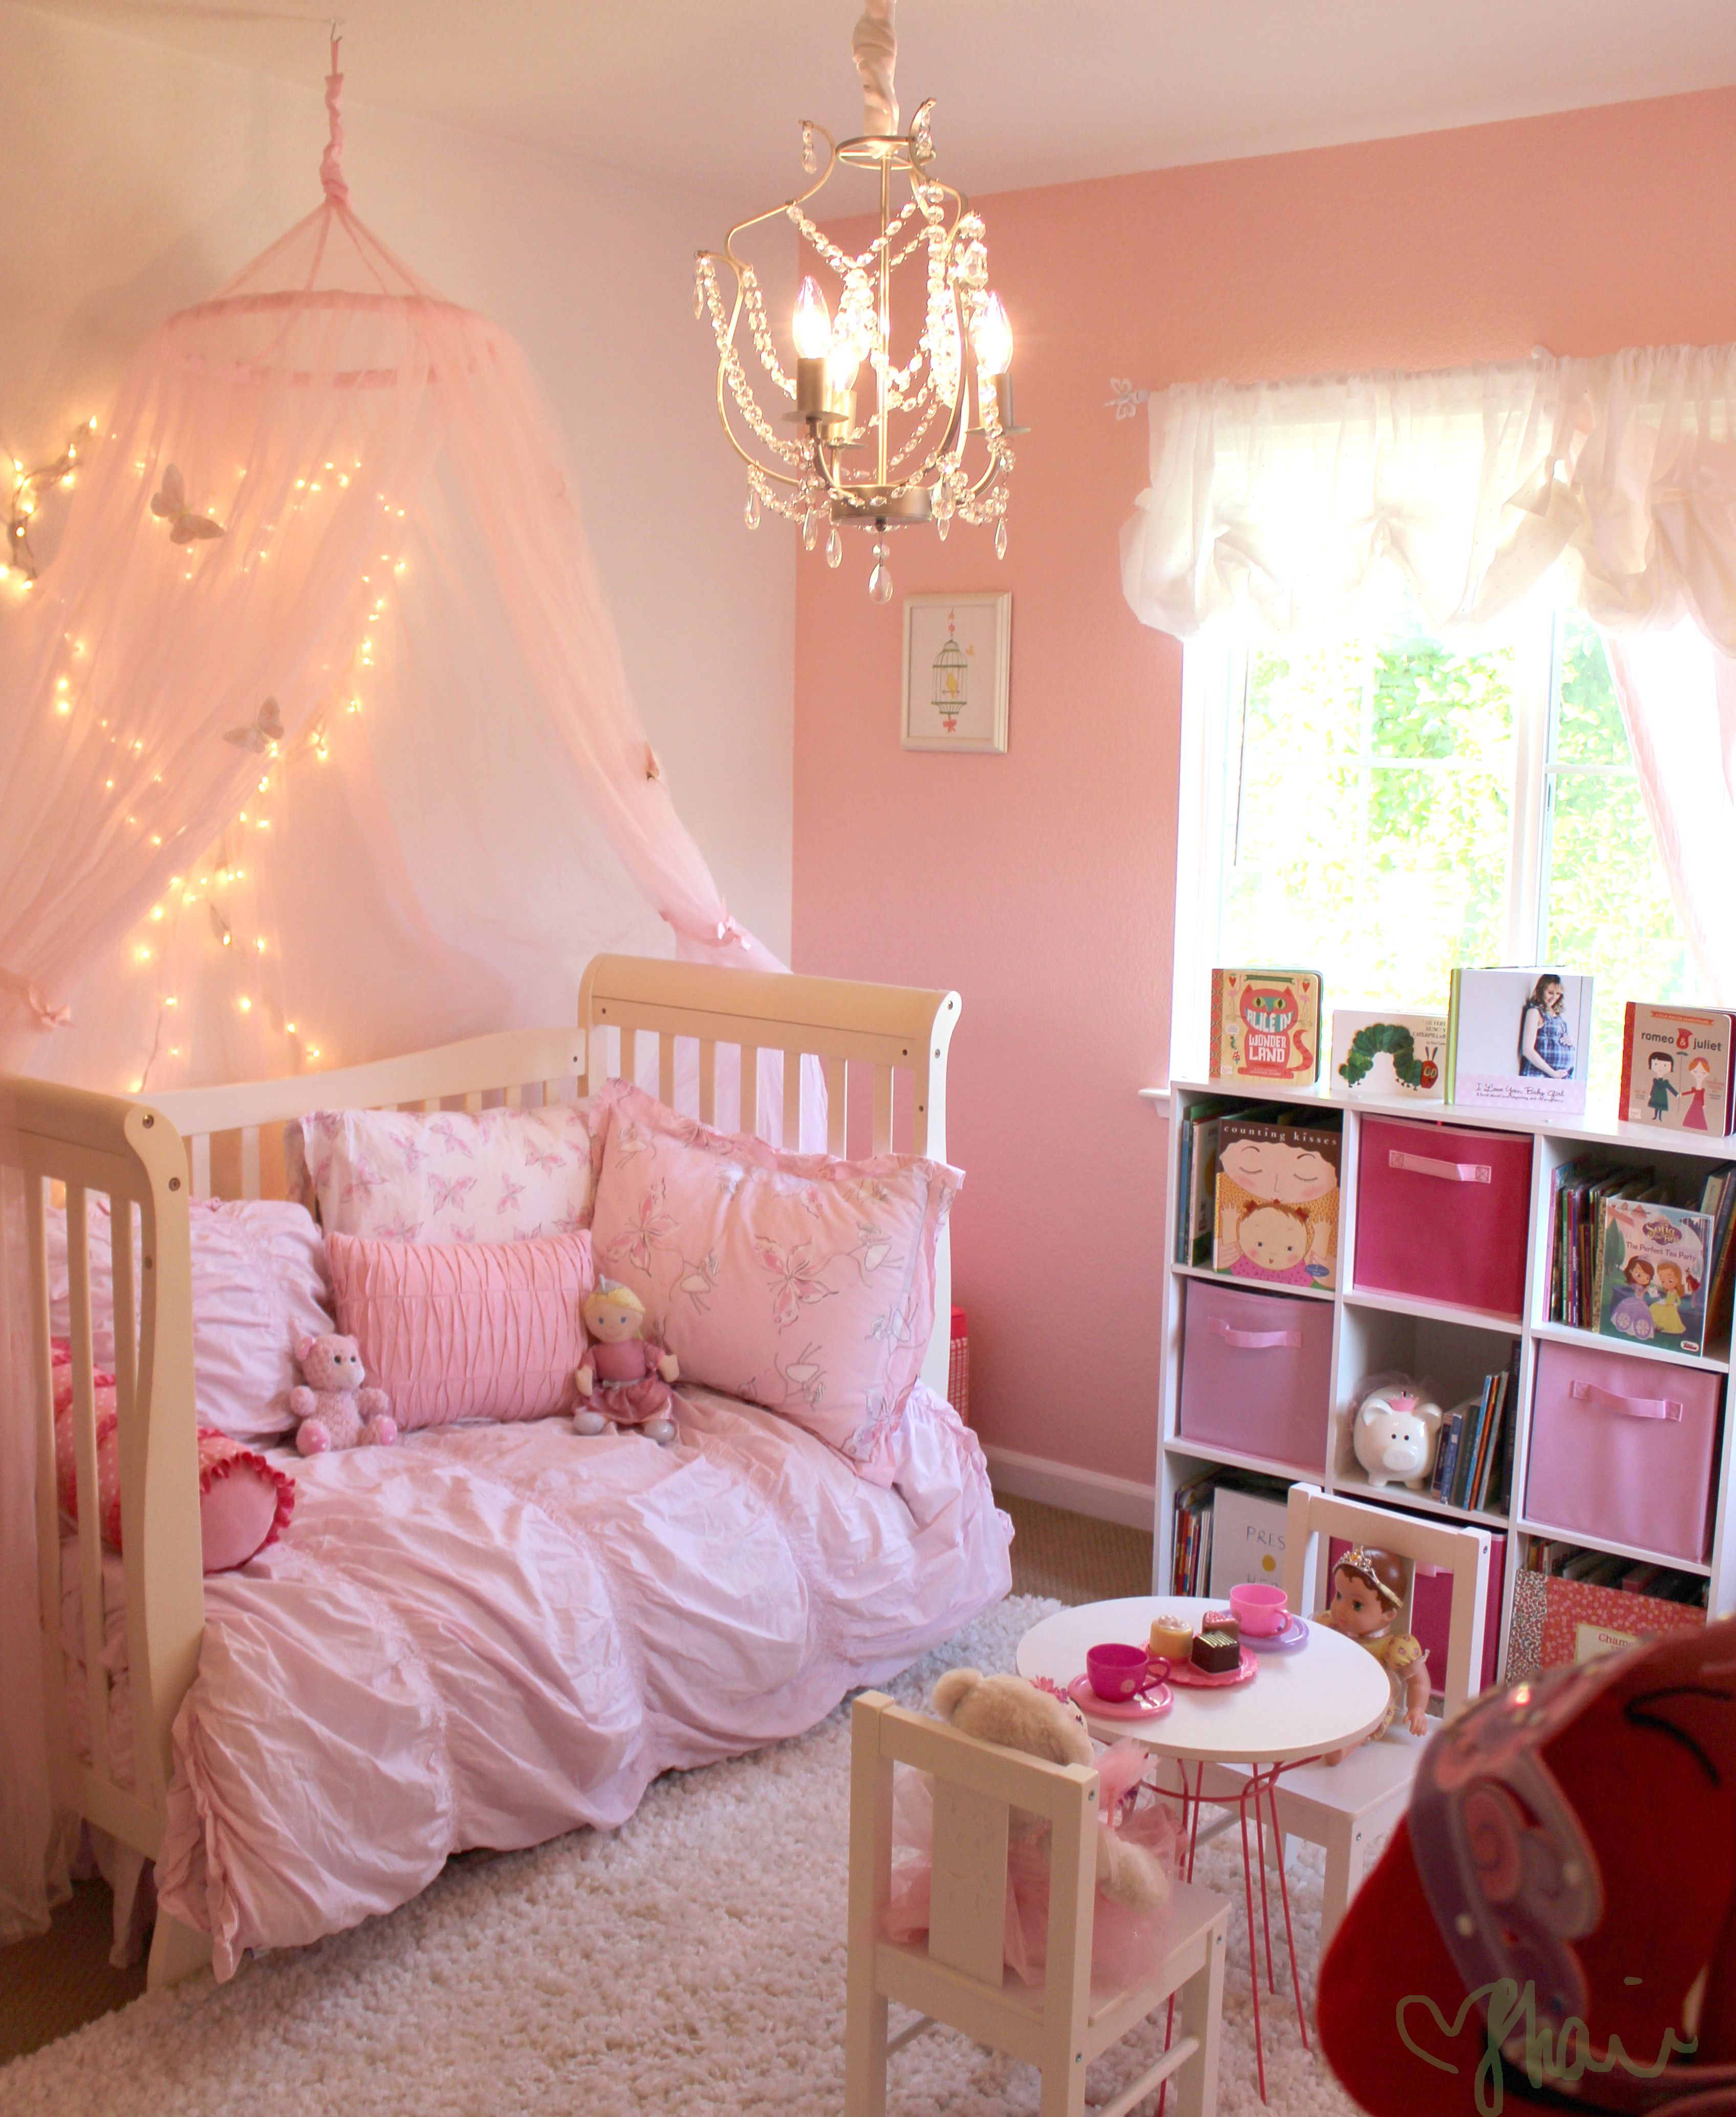 A Chic Toddler Room Fit For A Sweet Little Princess Girl Room